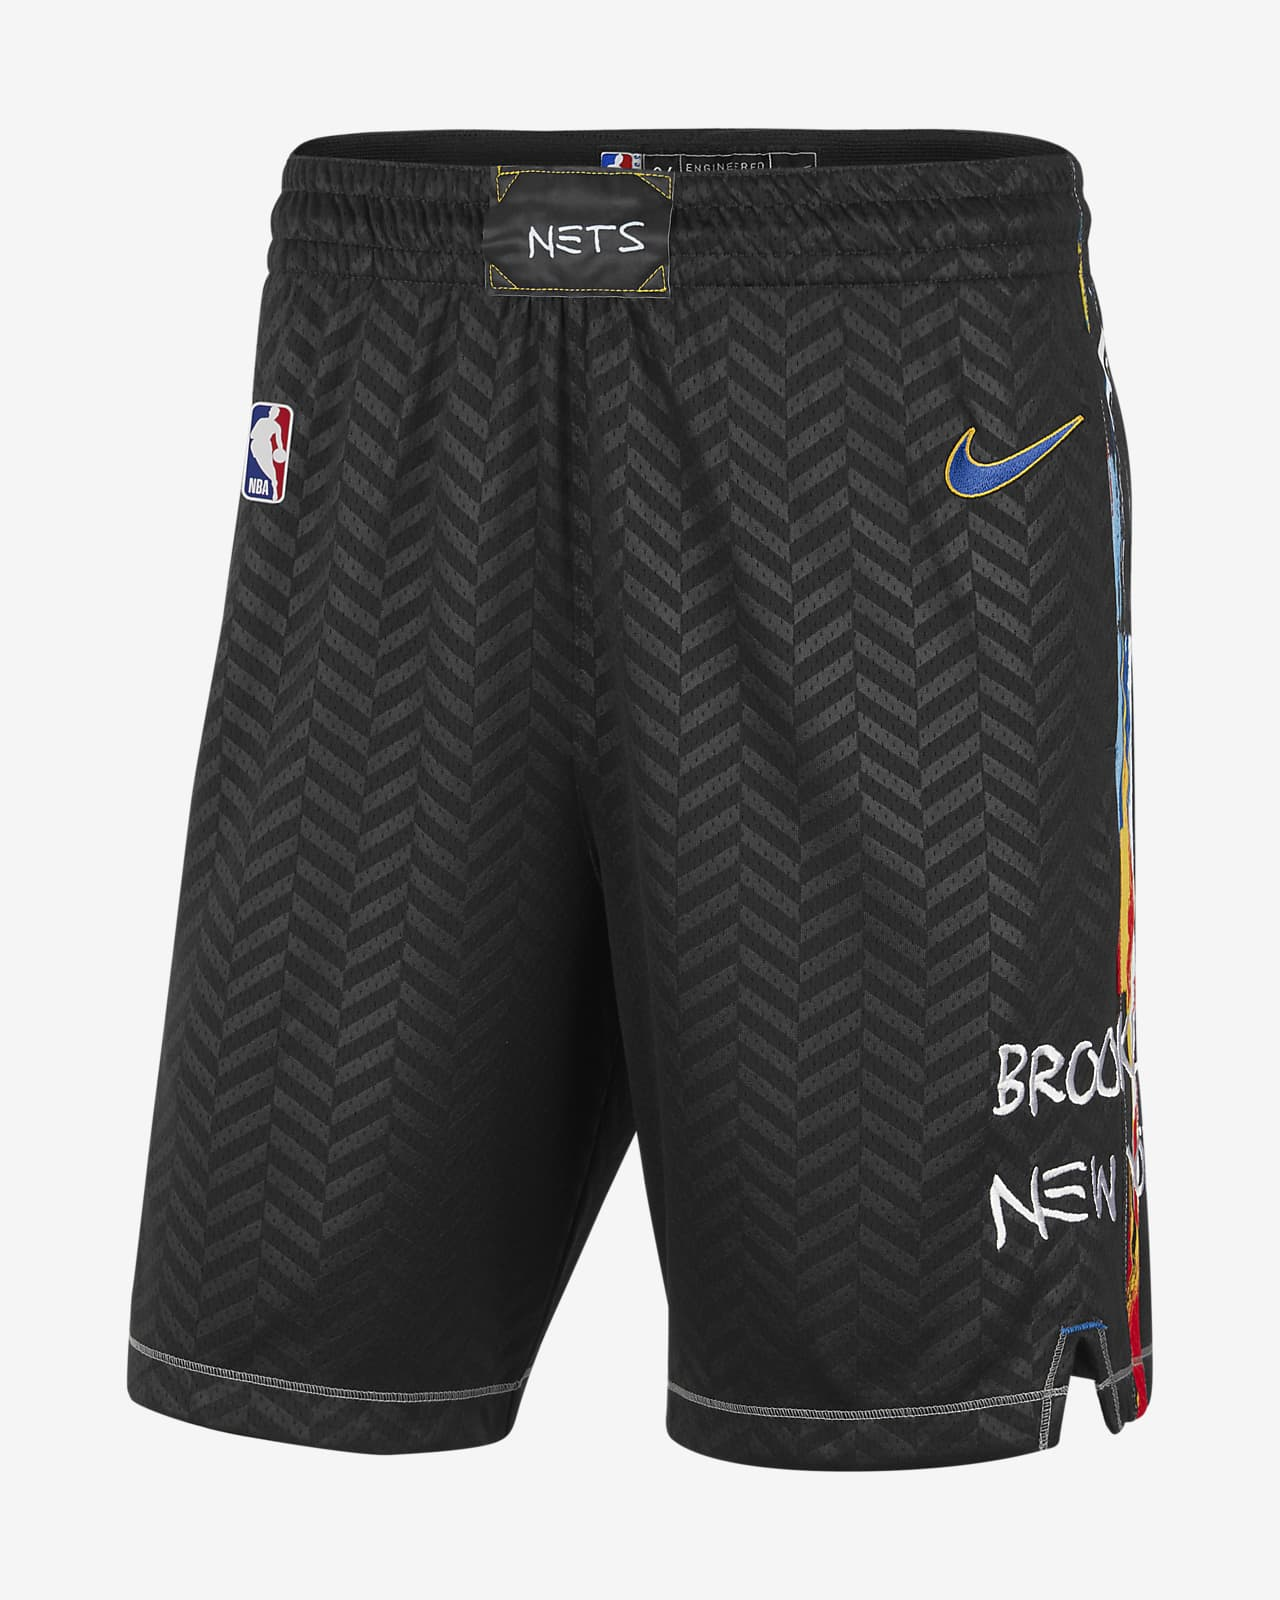 Short Nike NBA Swingman Brooklyn Nets City Edition 2020 pour Homme